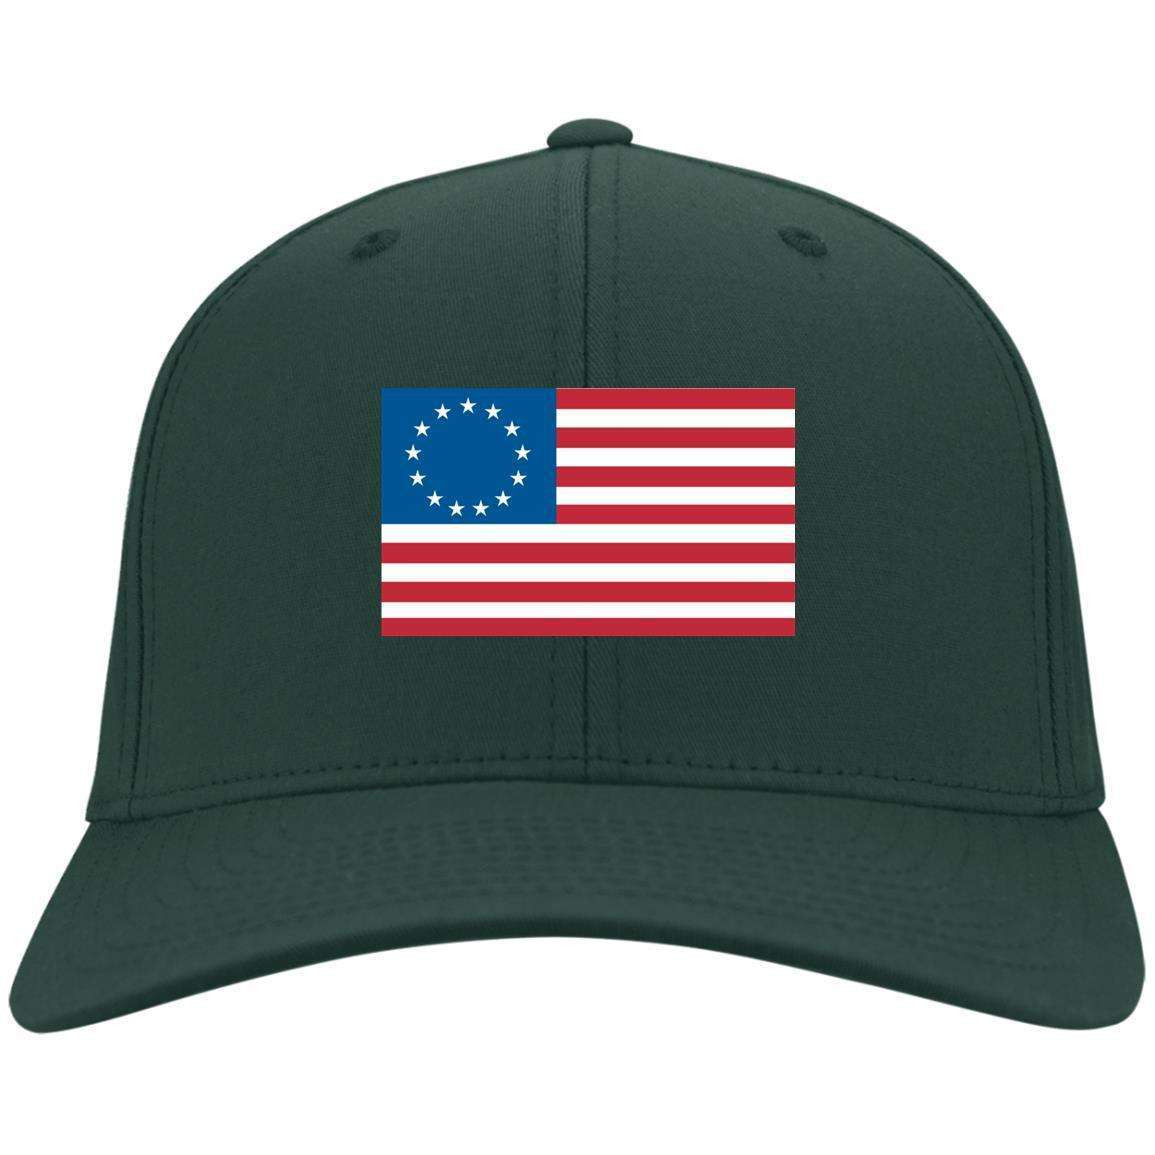 Betsy Ross Flag Original Dad Cap